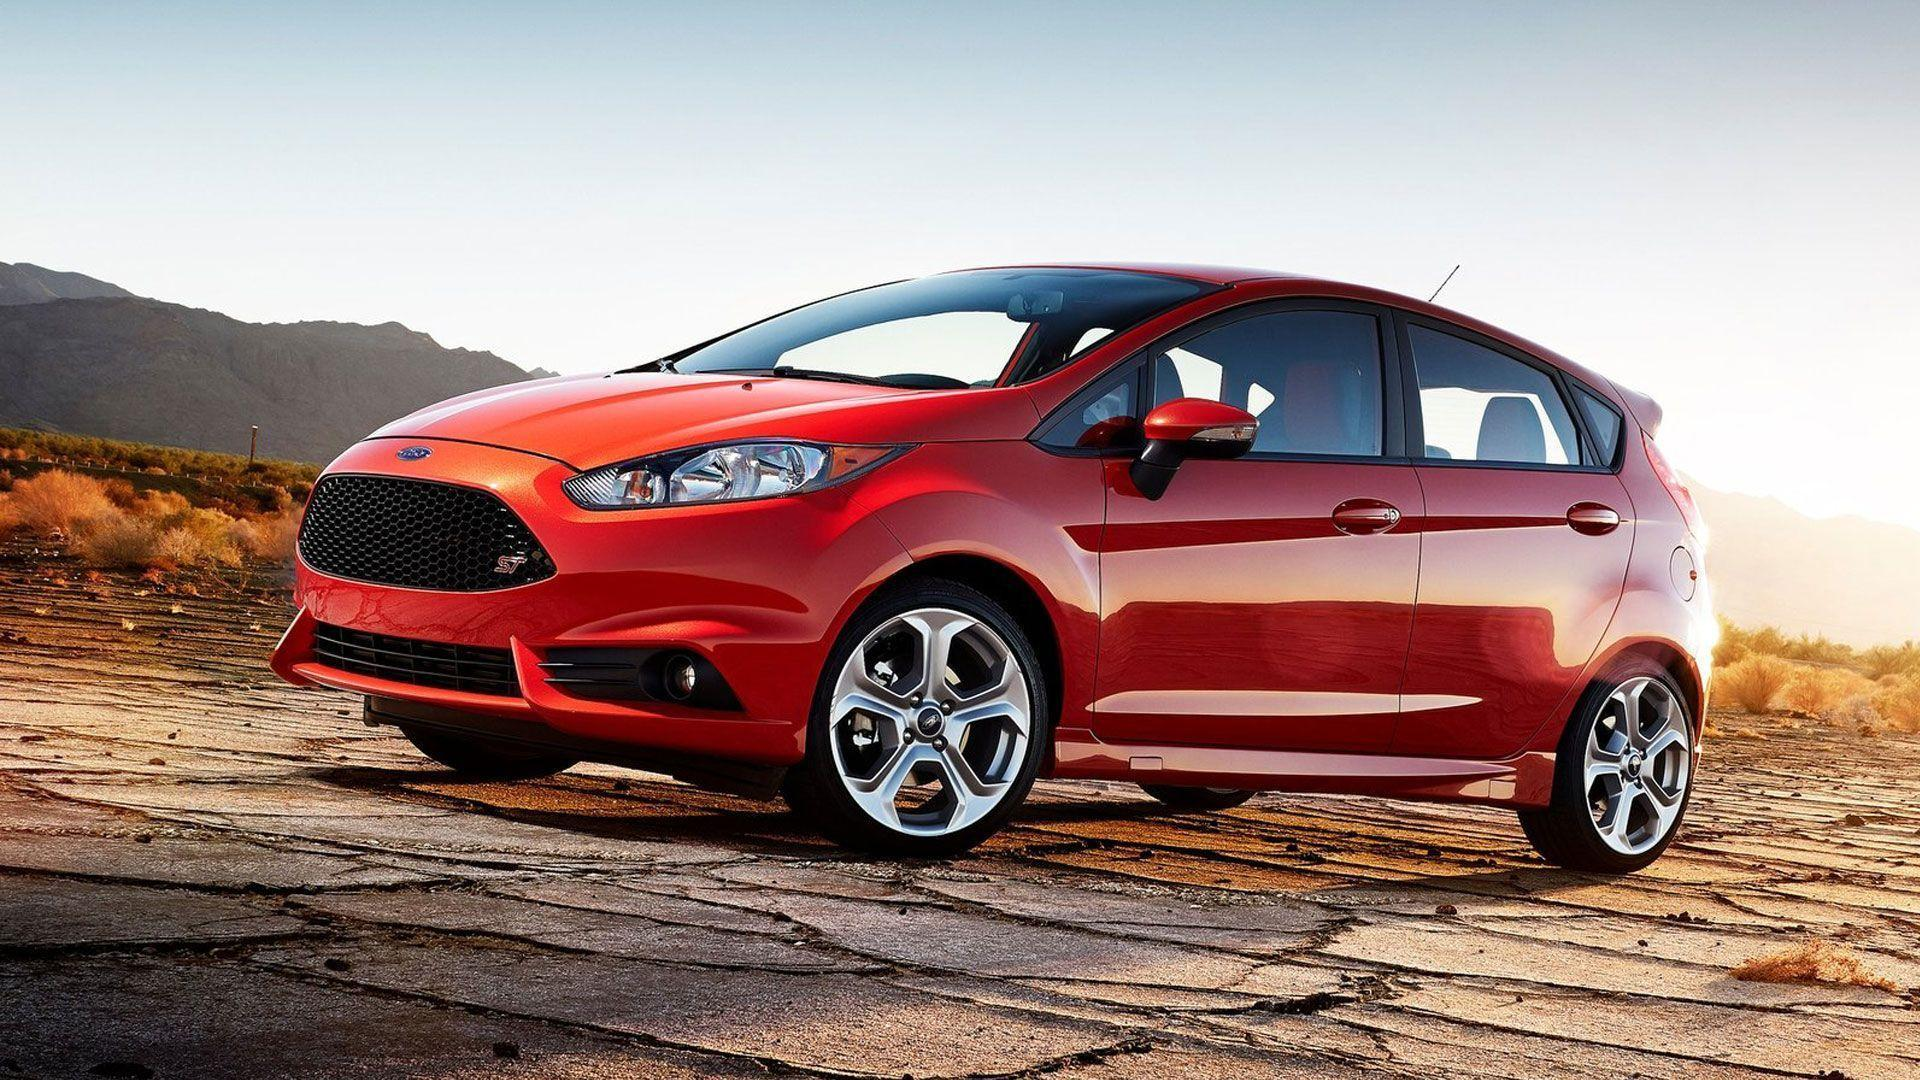 Ford Fiesta Wallpapers and Backgrounds Image